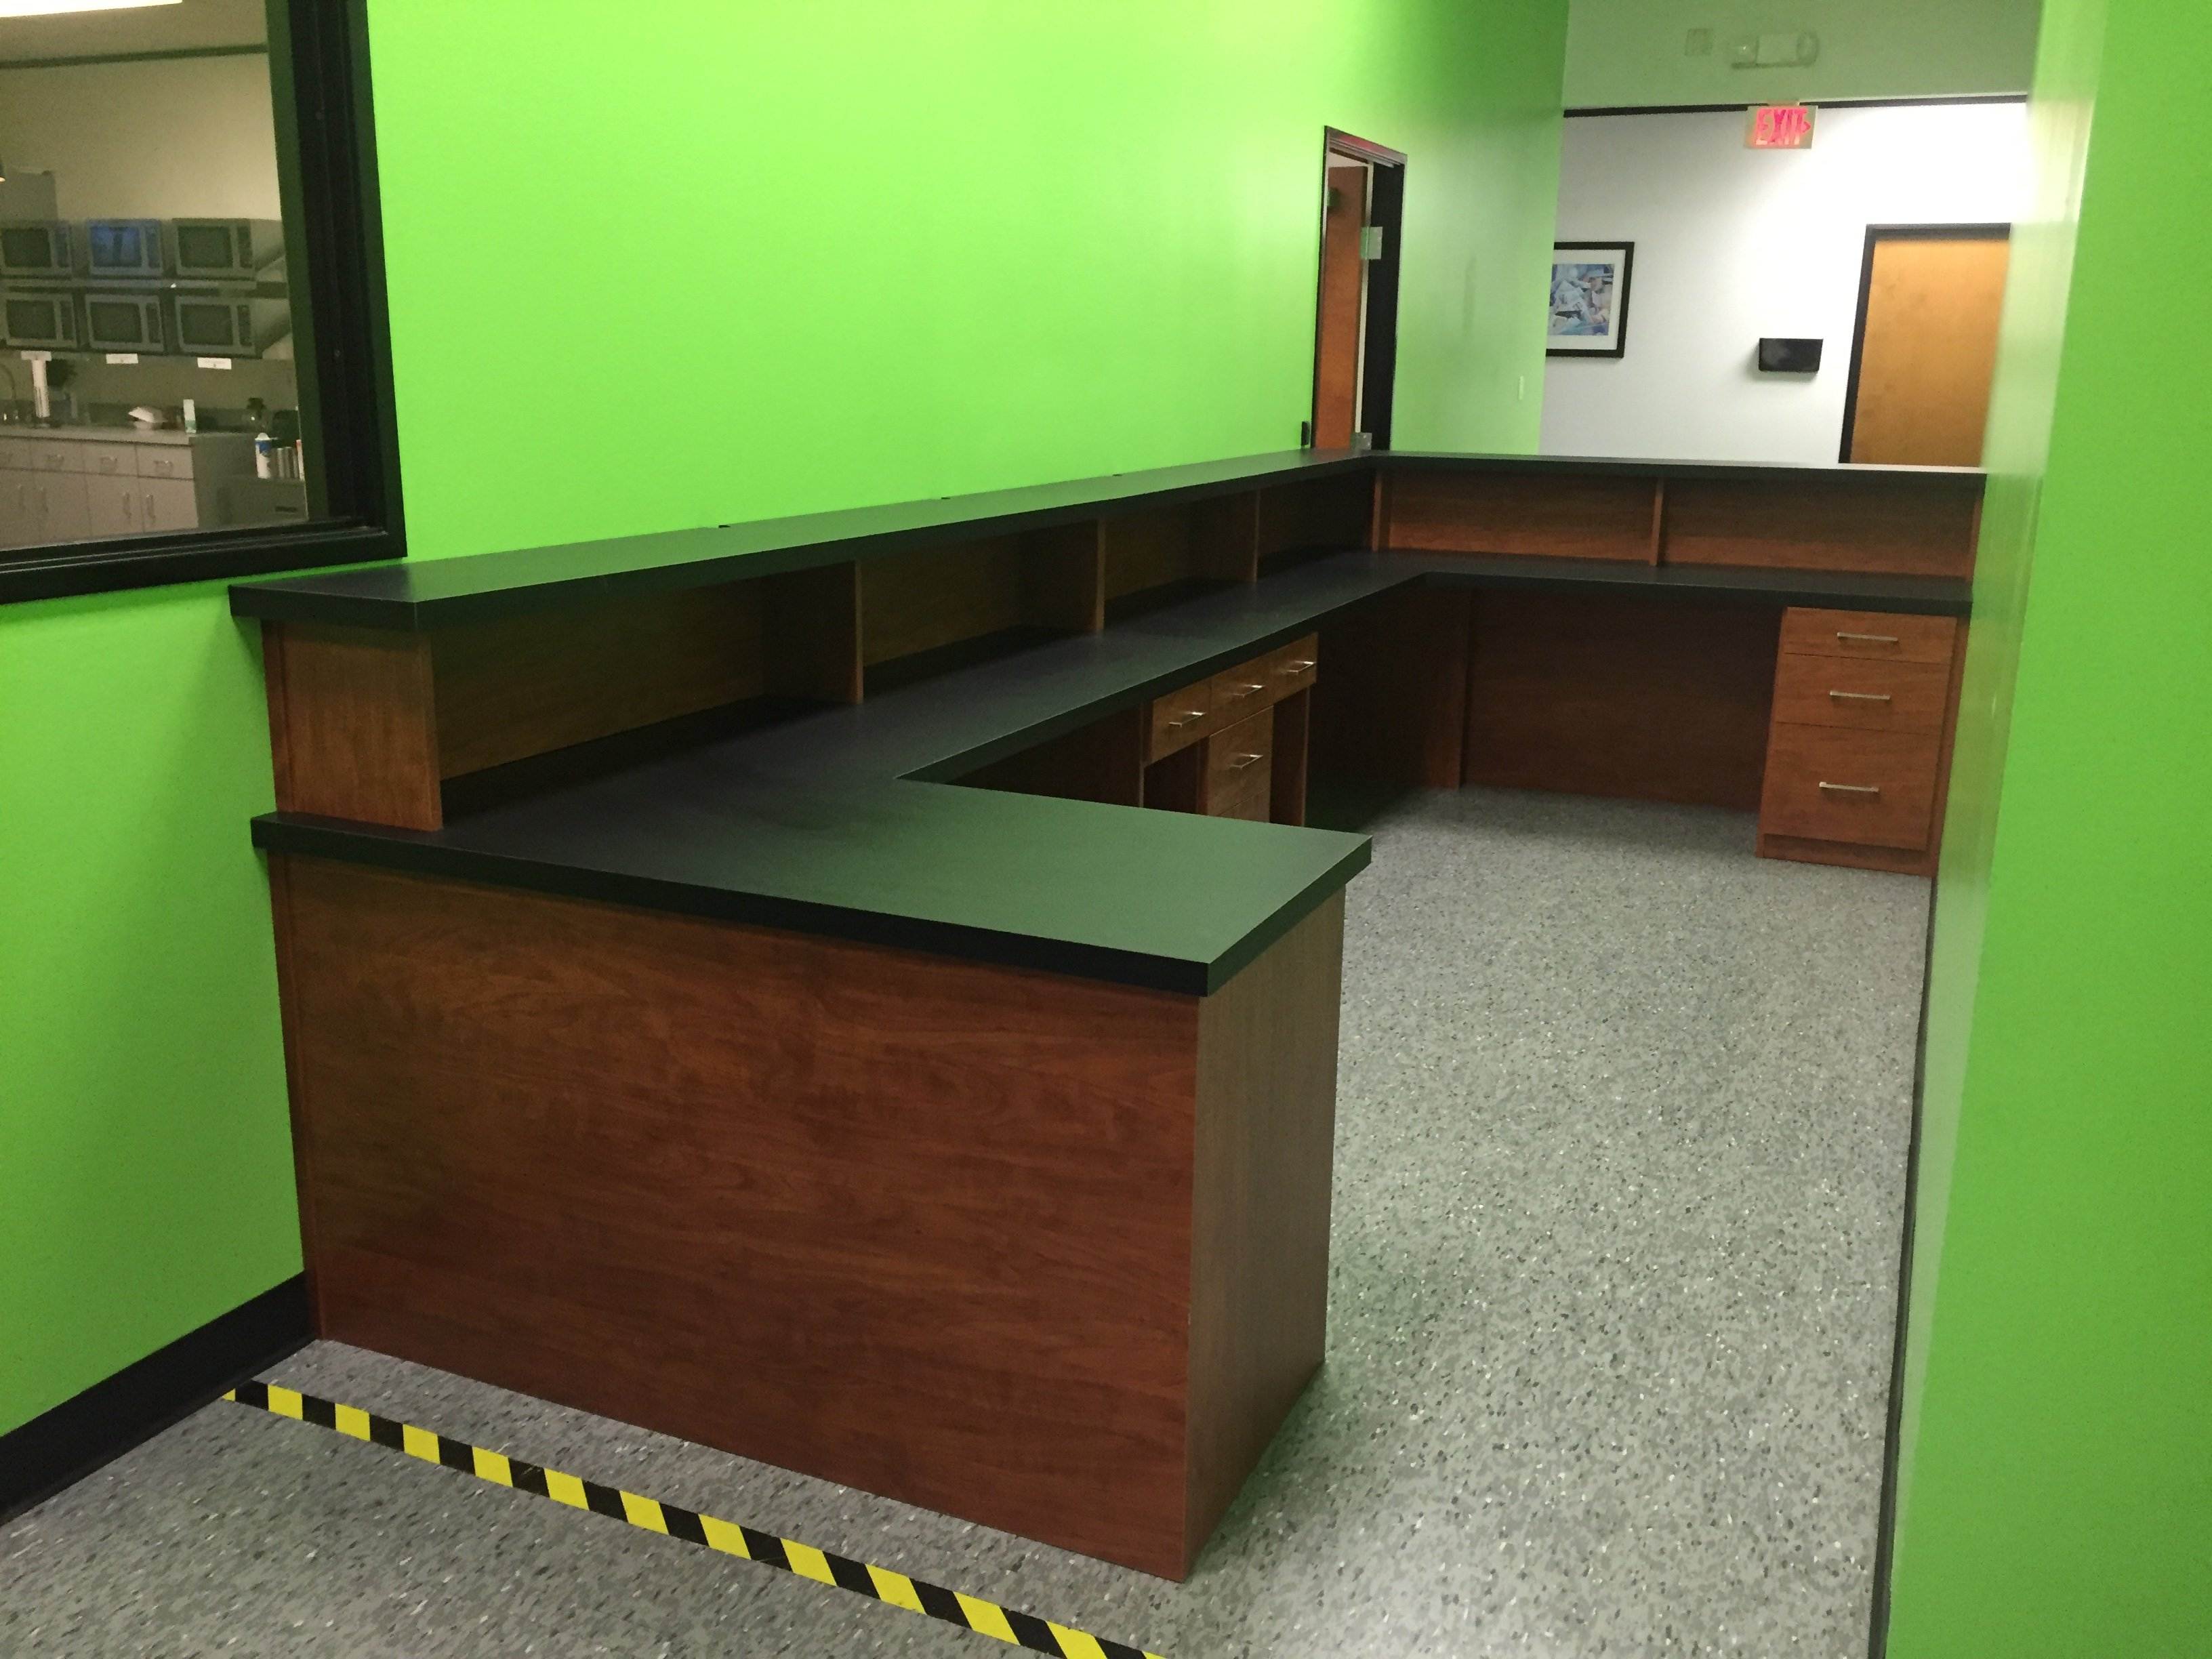 Commercial Security Station with shelving and drawers